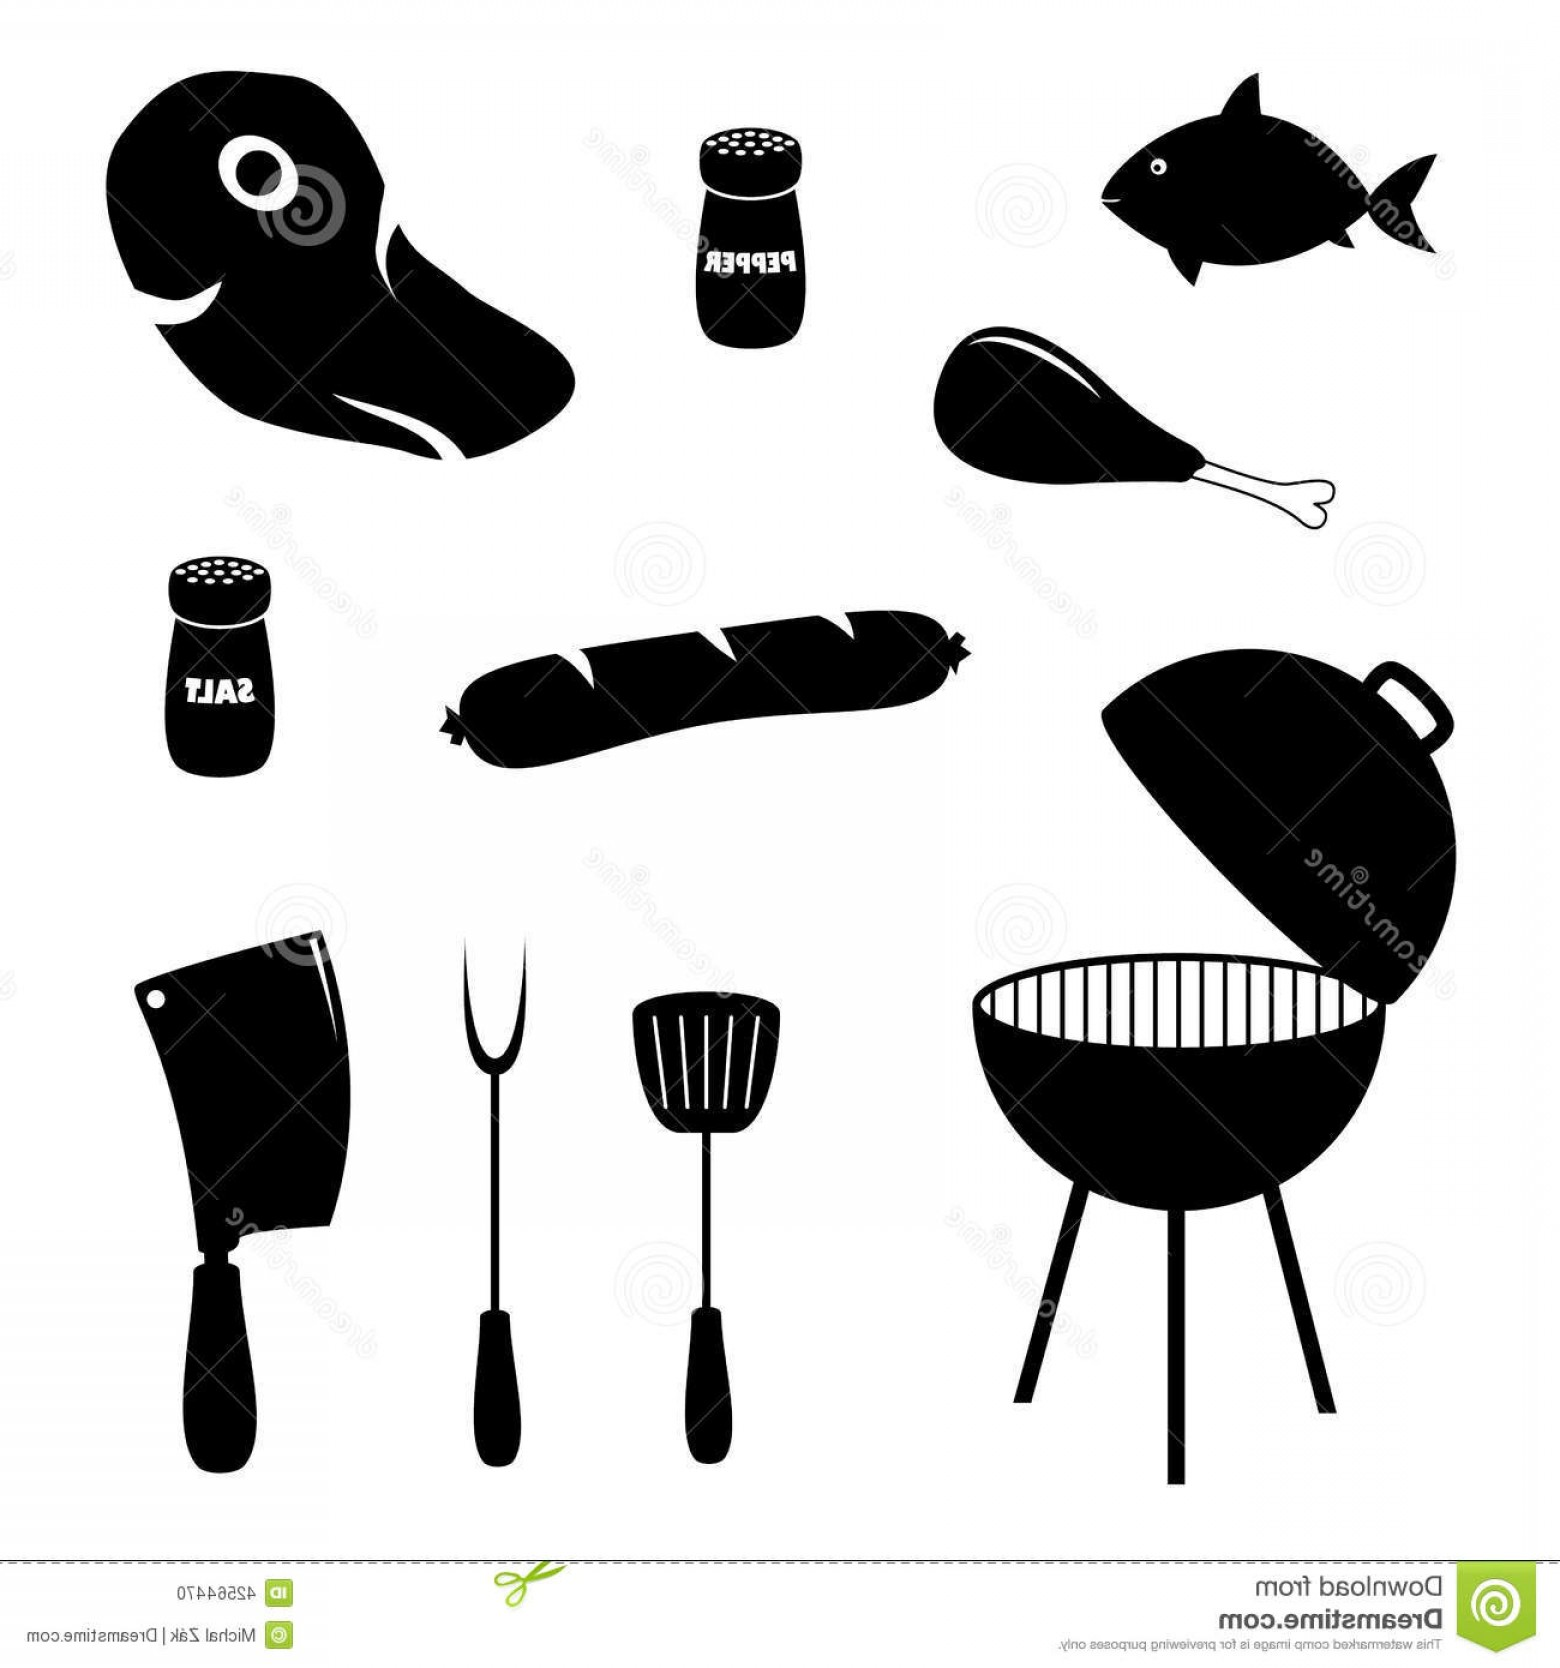 BBQ Grill Vector Black And White: Stock Illustration Set Barbecue Related Icons Food Grill Tools Collection Simple Black White To Party Image